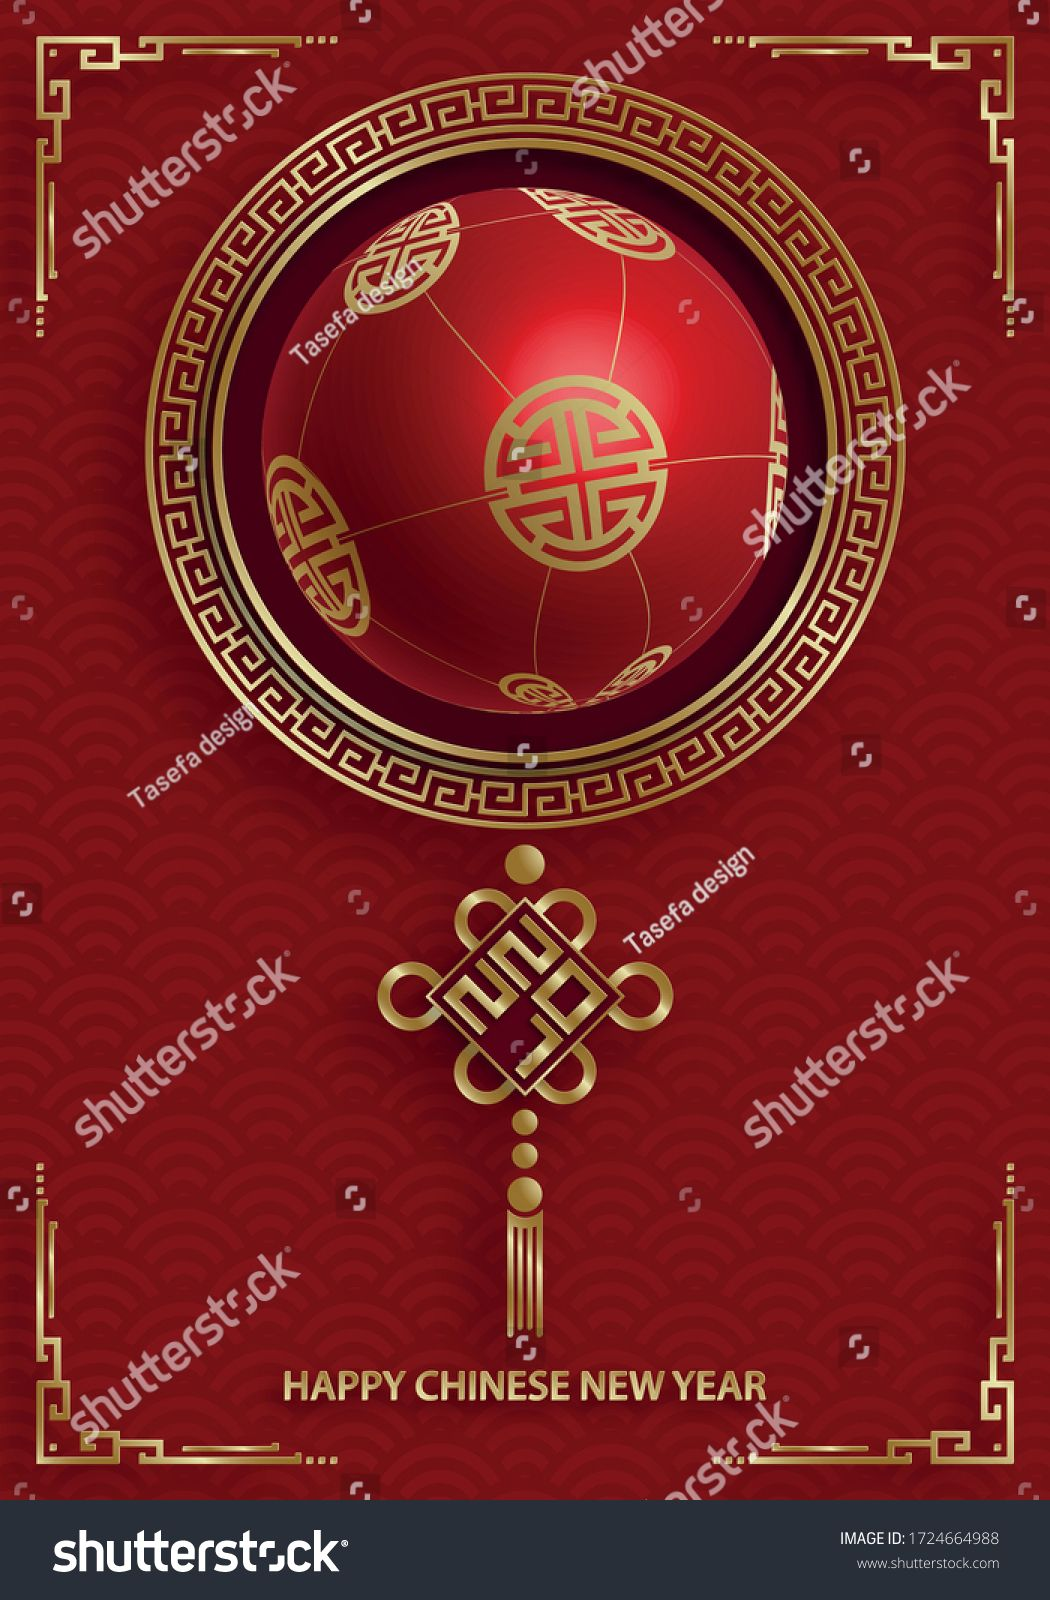 Image vectorielle de stock de Happy Chinese New Year 2021